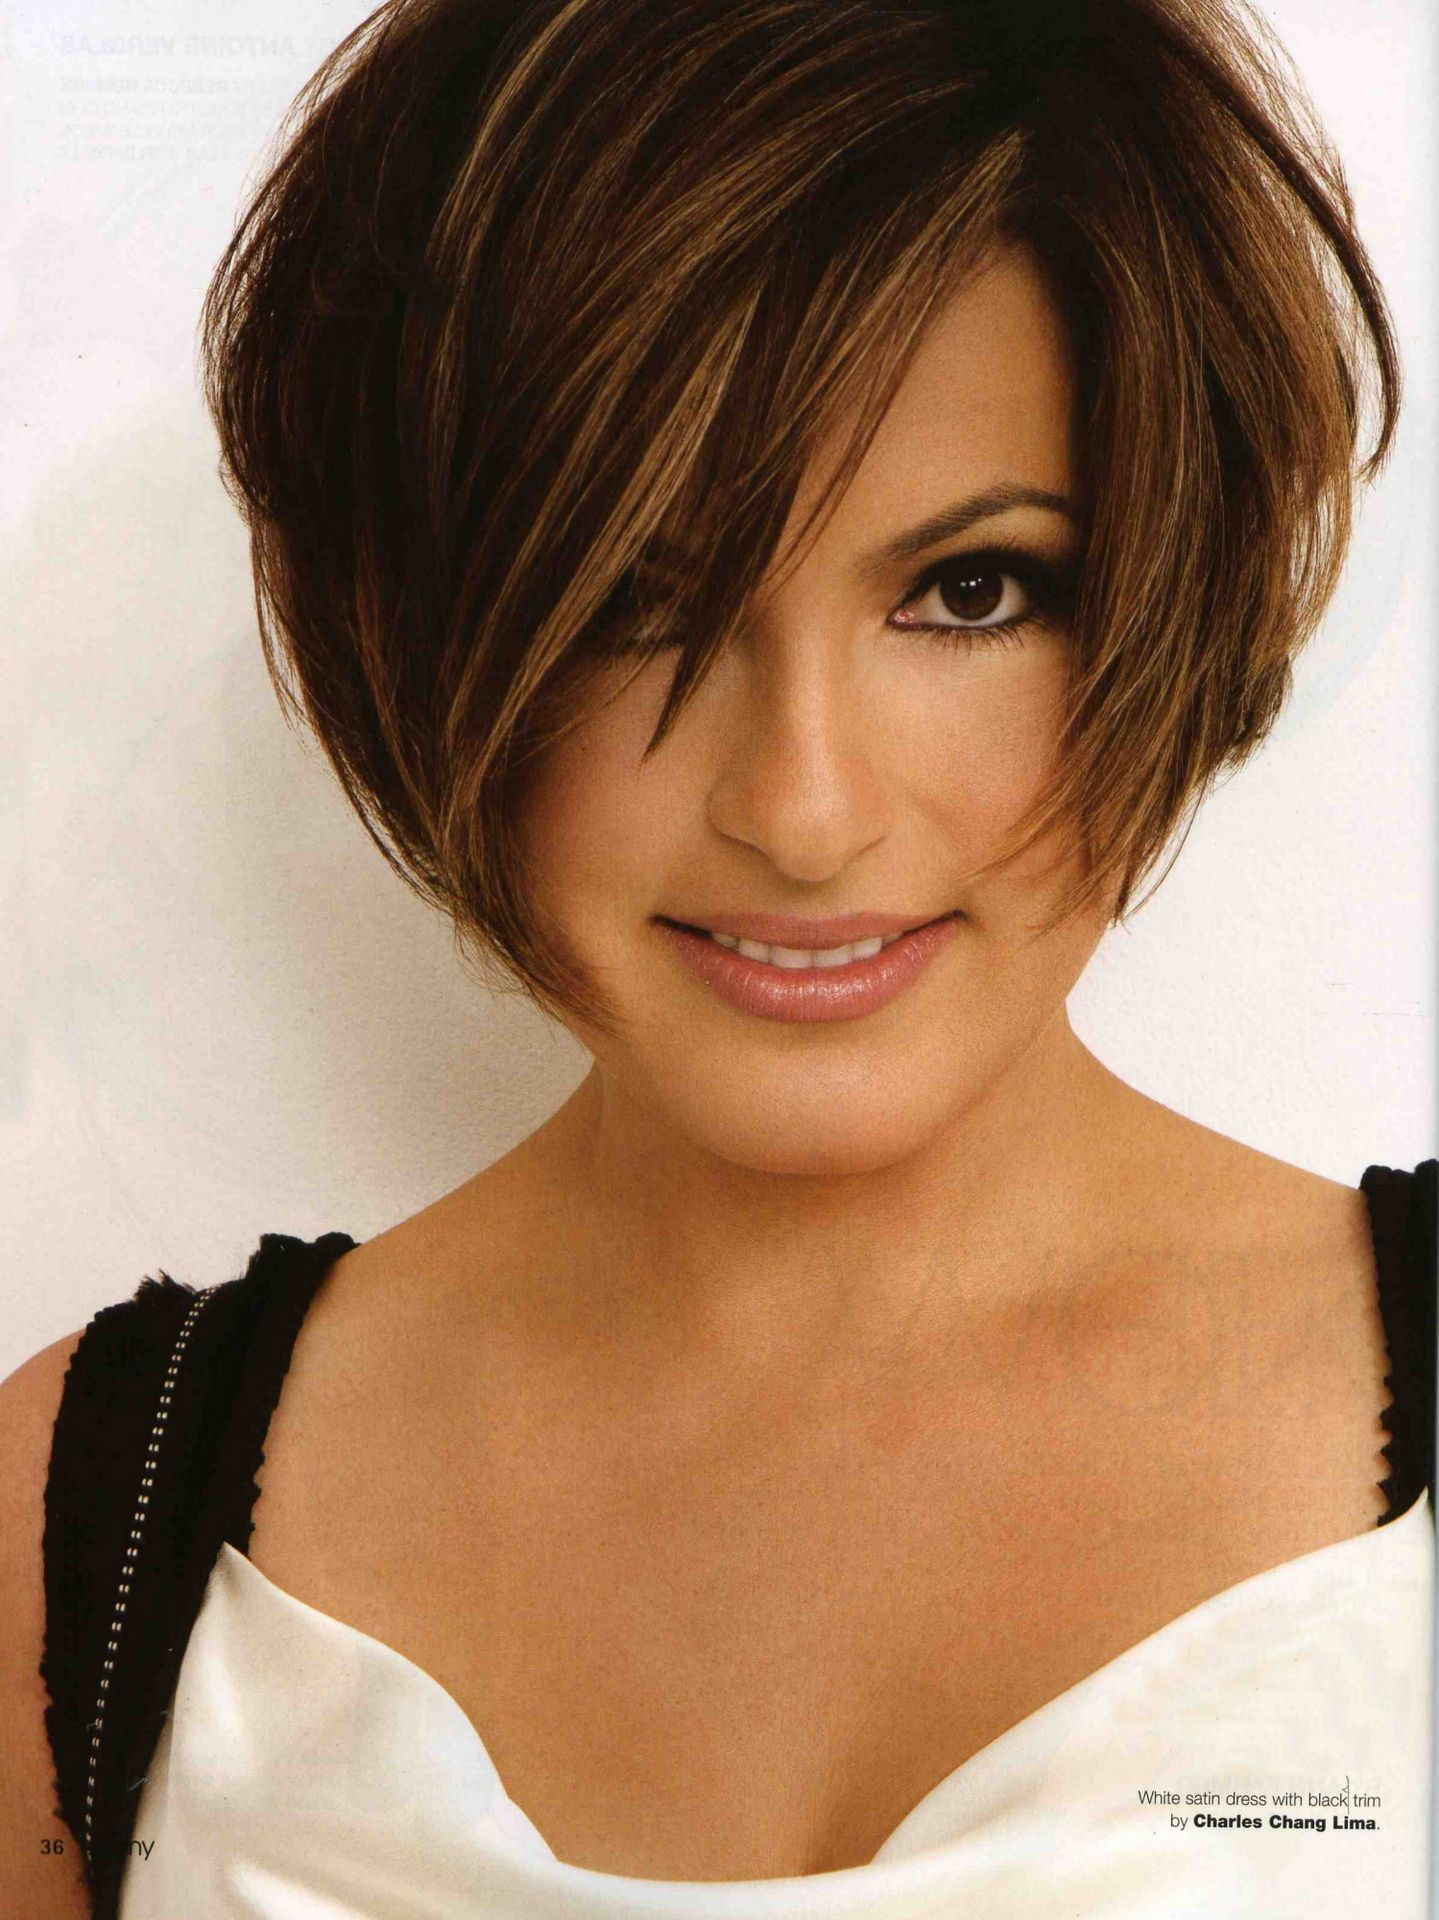 mariska hargitaydetective olivia benson | hot in hair